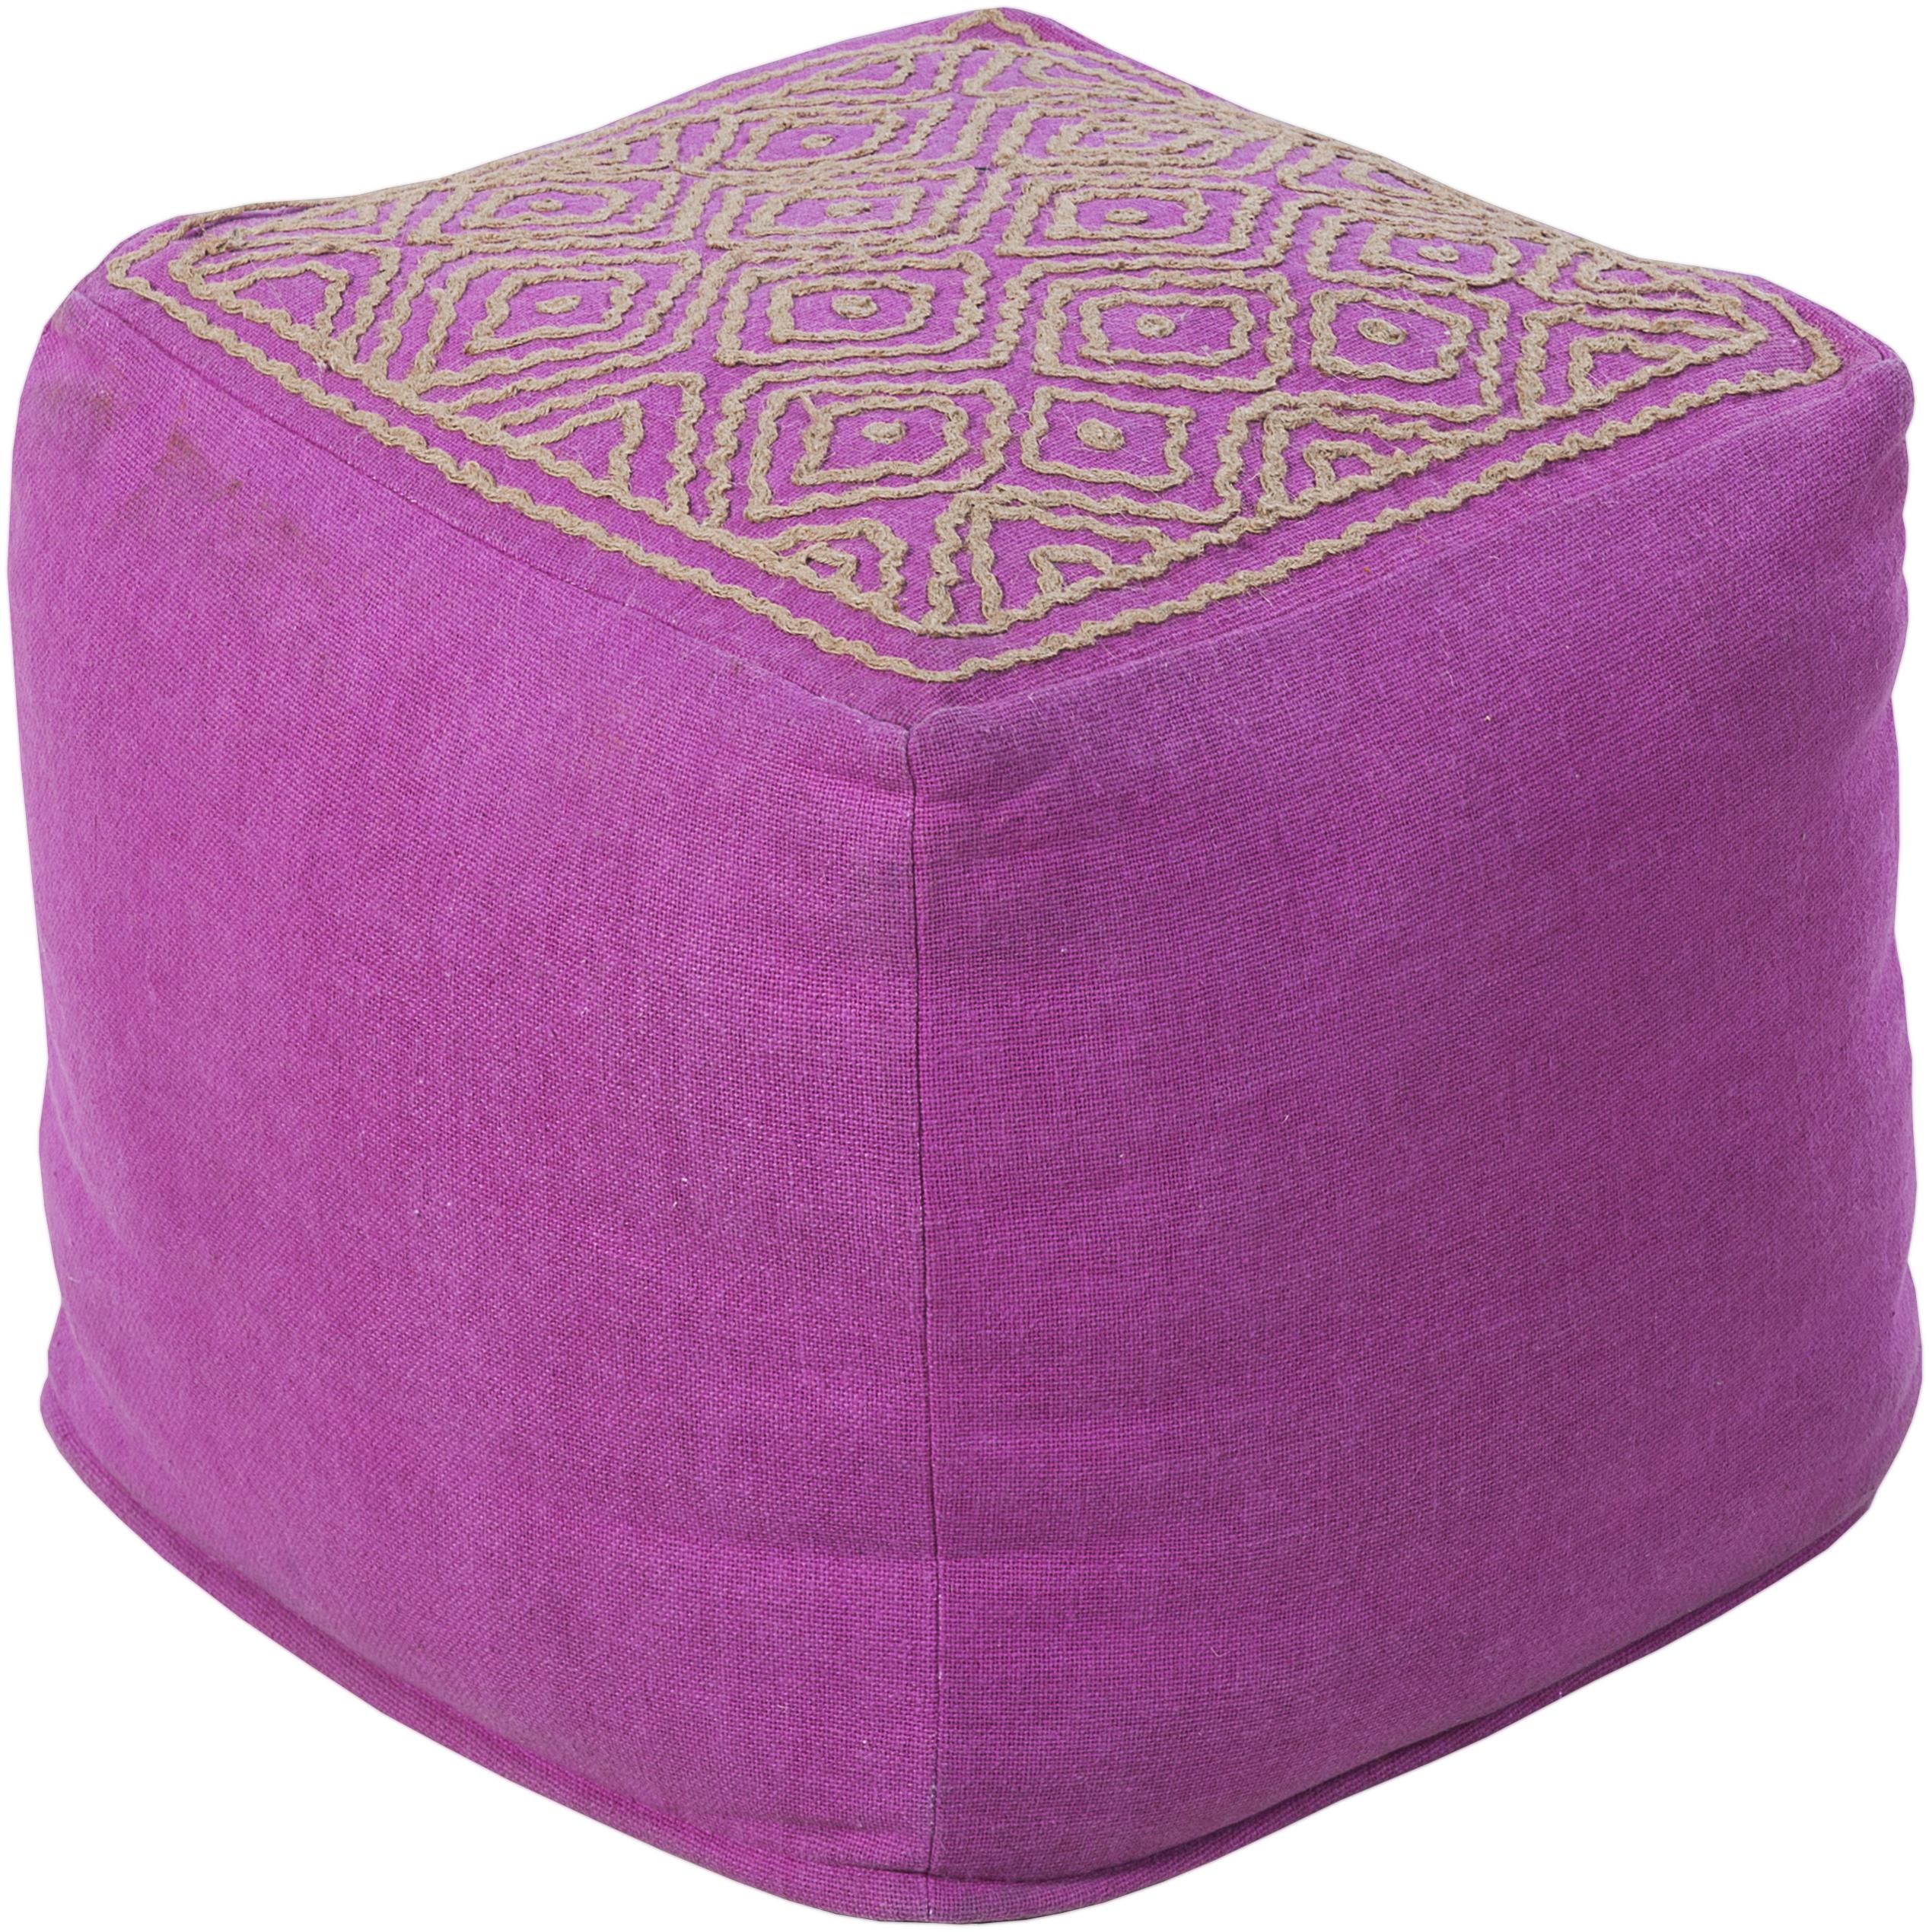 """Poufs 18"""" x 18"""" x 18"""" Pouf by Surya at Upper Room Home Furnishings"""